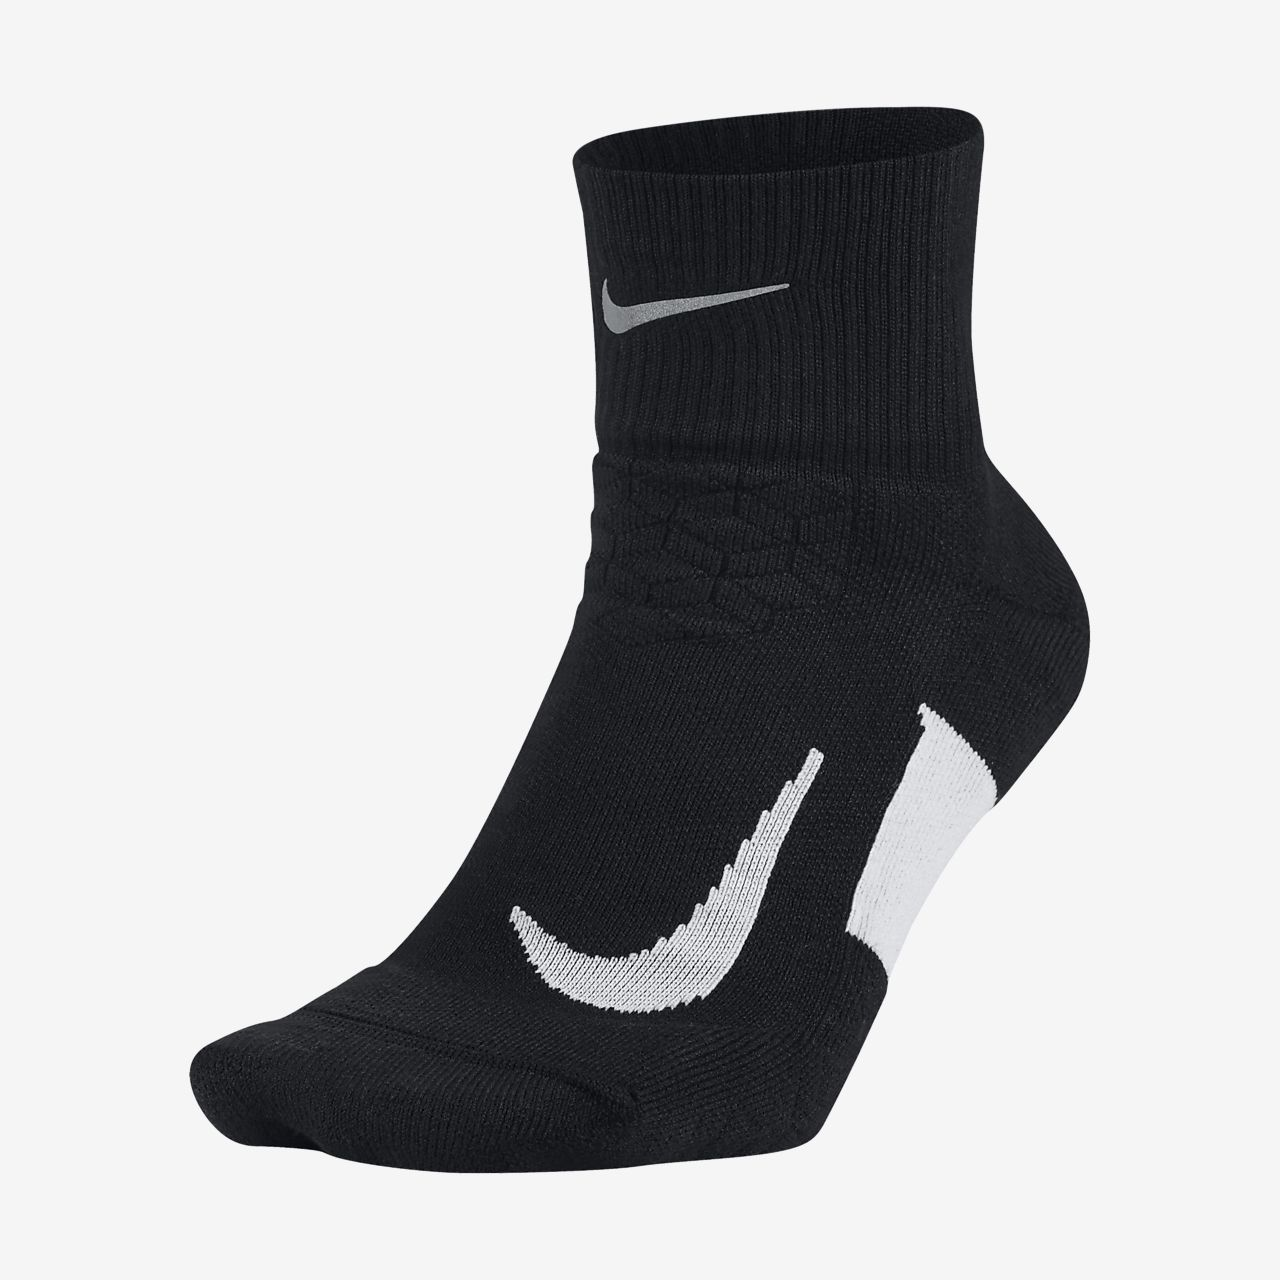 Nike Elite Lightweight Quarter Black Running Socks